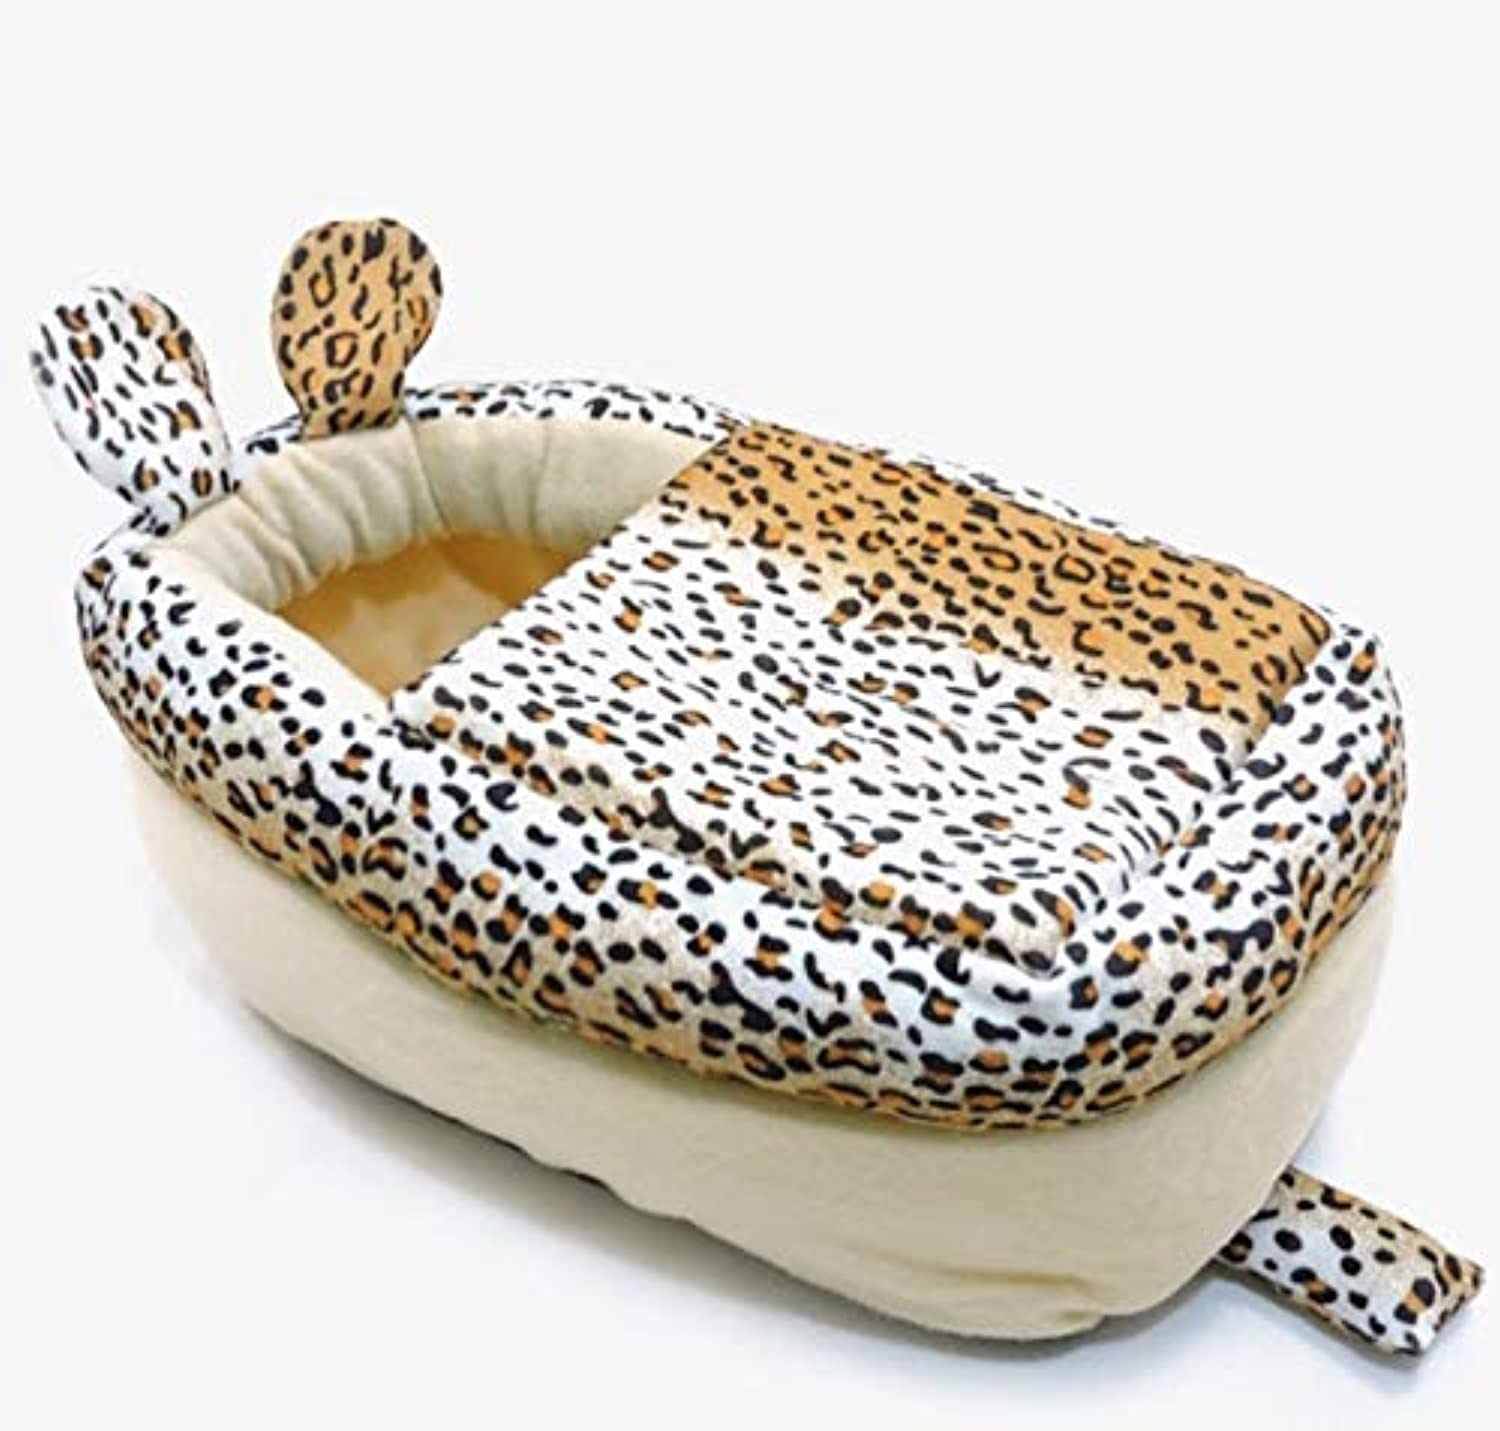 Cat Nest Four Seasons Universal Cat House Villa Cat House SemiEnclosed Small Dog Kennel Pet Products